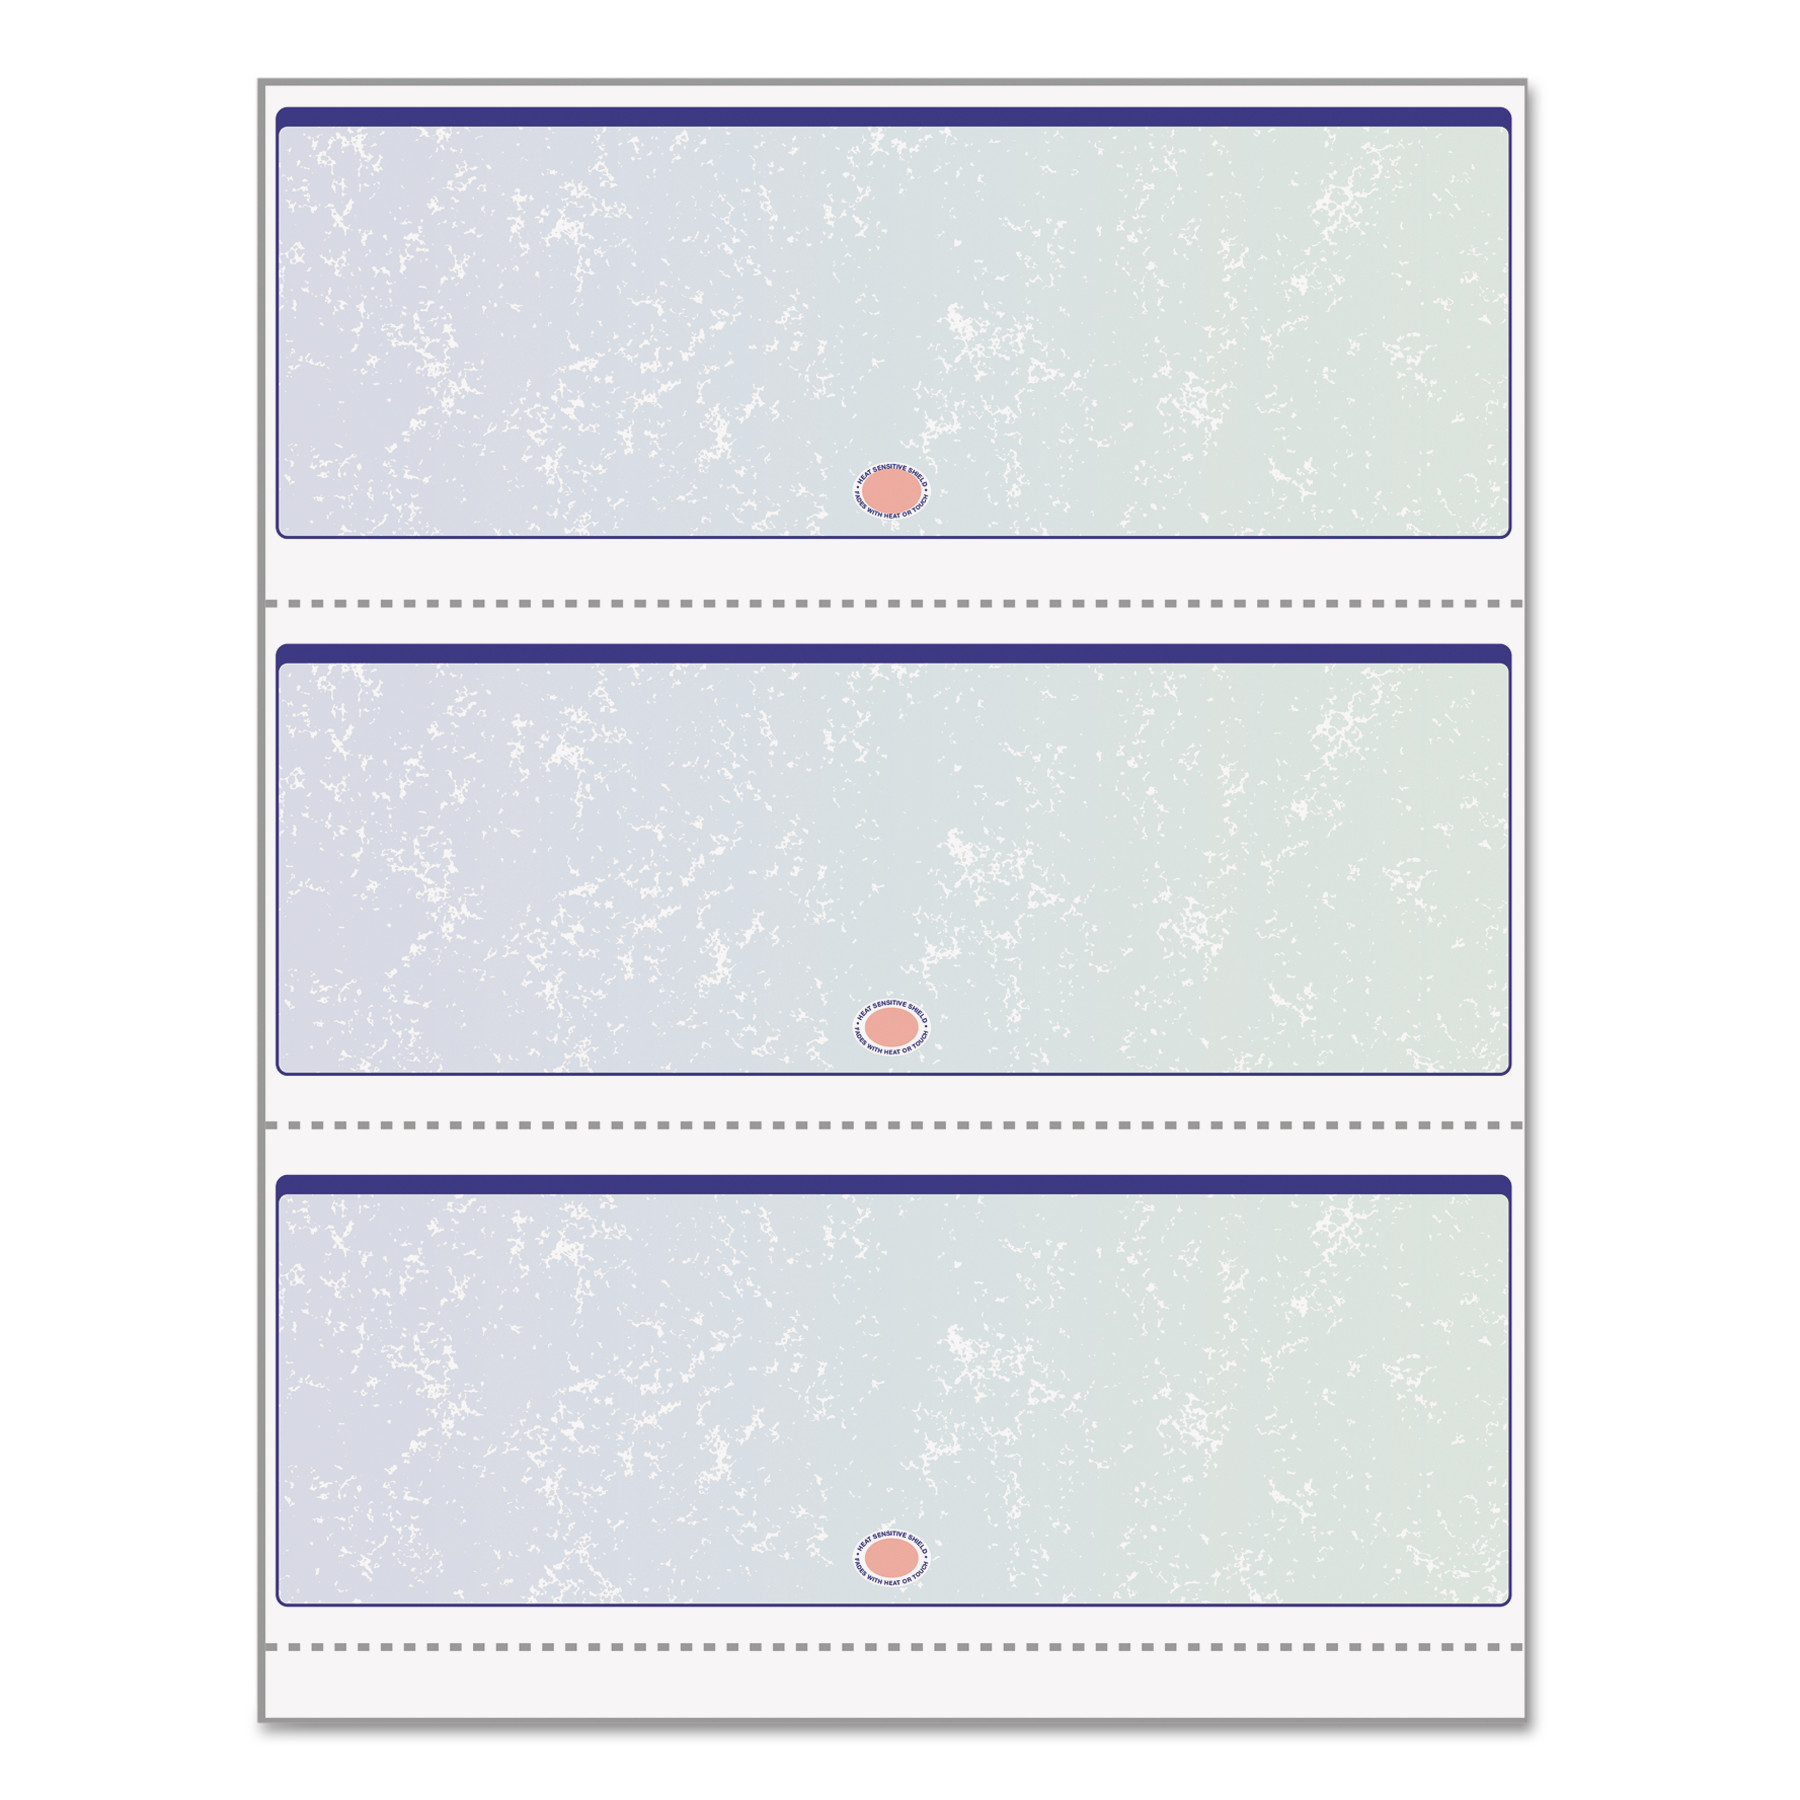 DocuGard Premier Prismatic Check, Blue/Green, 3/Page, 13 Features, 8 1/2 x 11, 500/RM